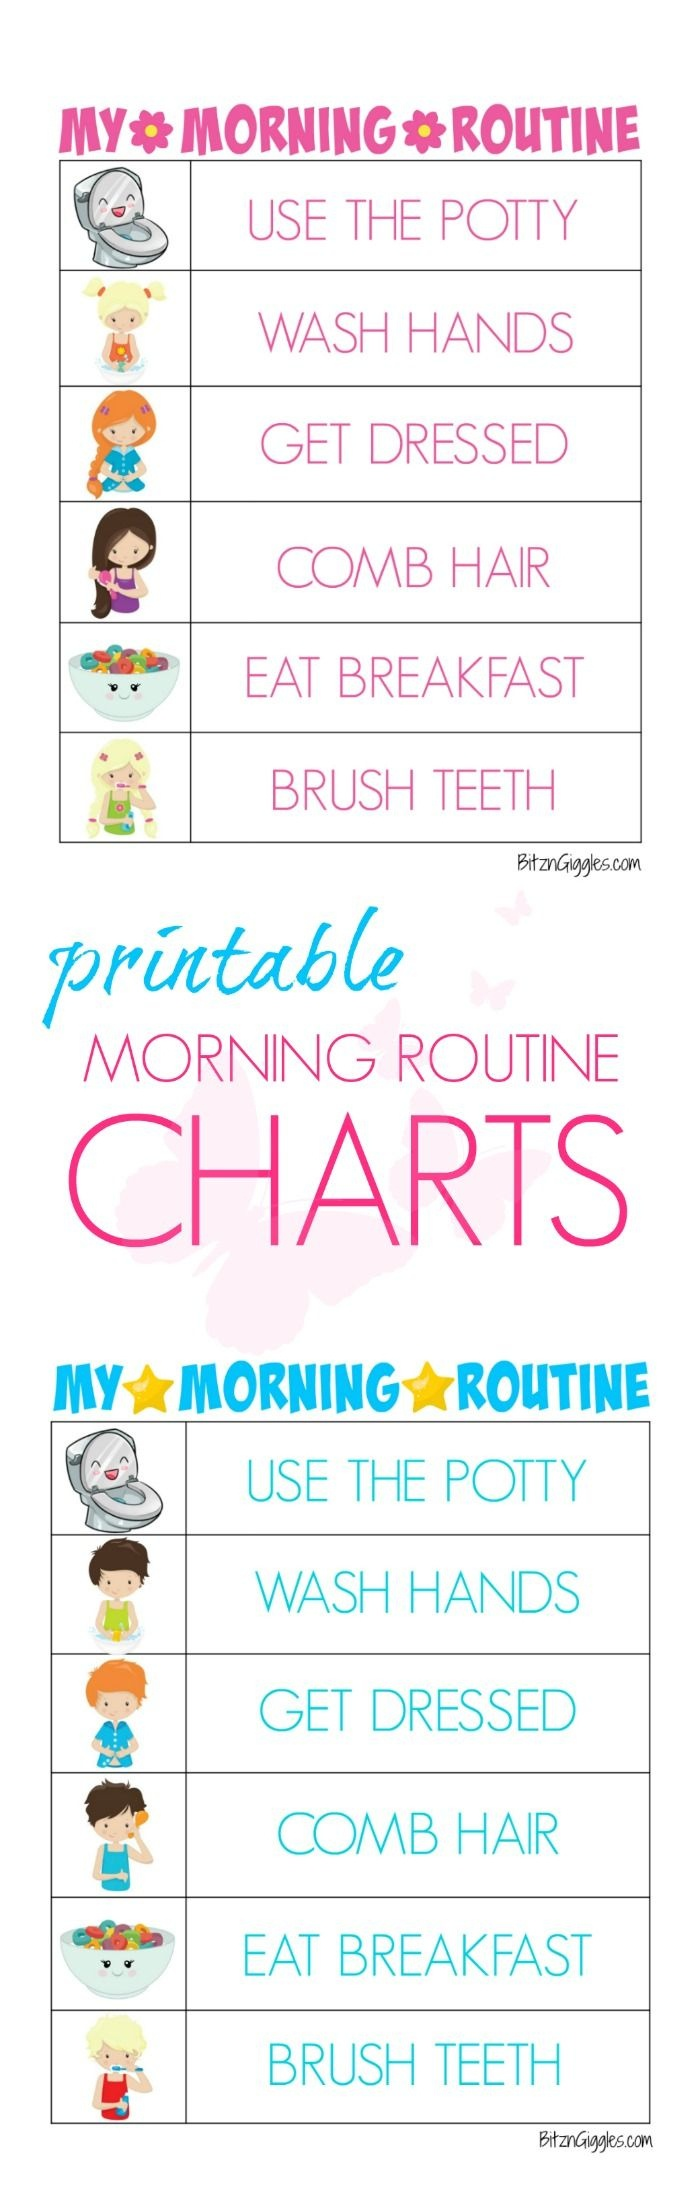 Printable Morning Routine Charts | Bloggers' Fun Family Projects - Free Printable Morning Routine Chart